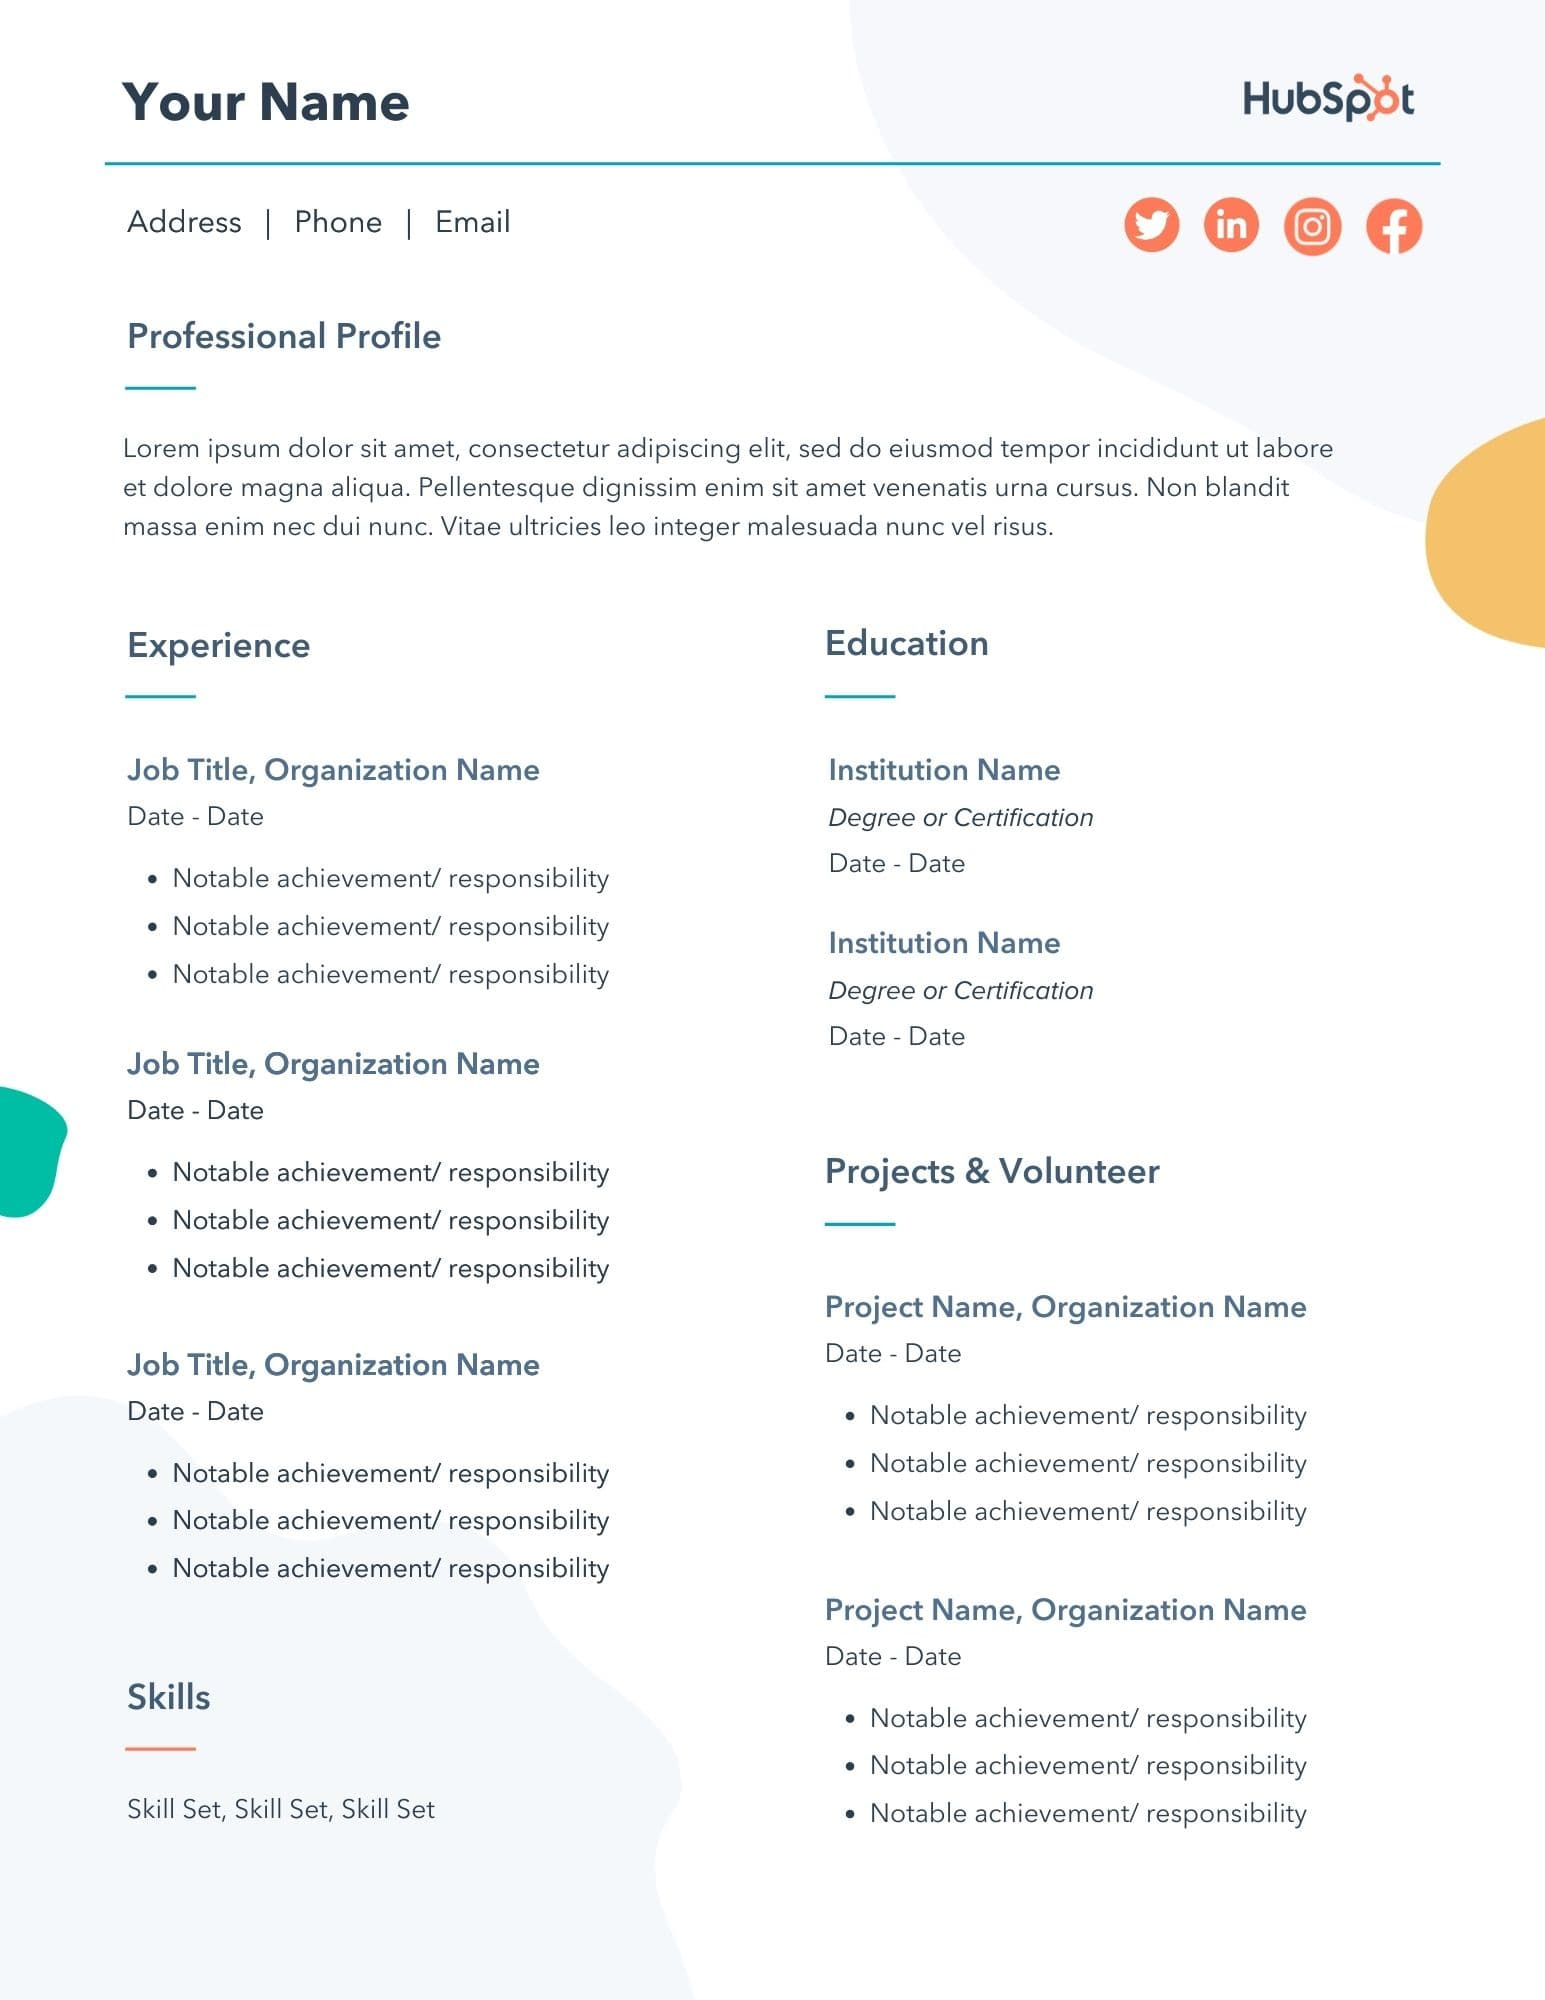 free resume templates for microsoft word to make your own template best sites linkedin Resume Make Your Own Resume